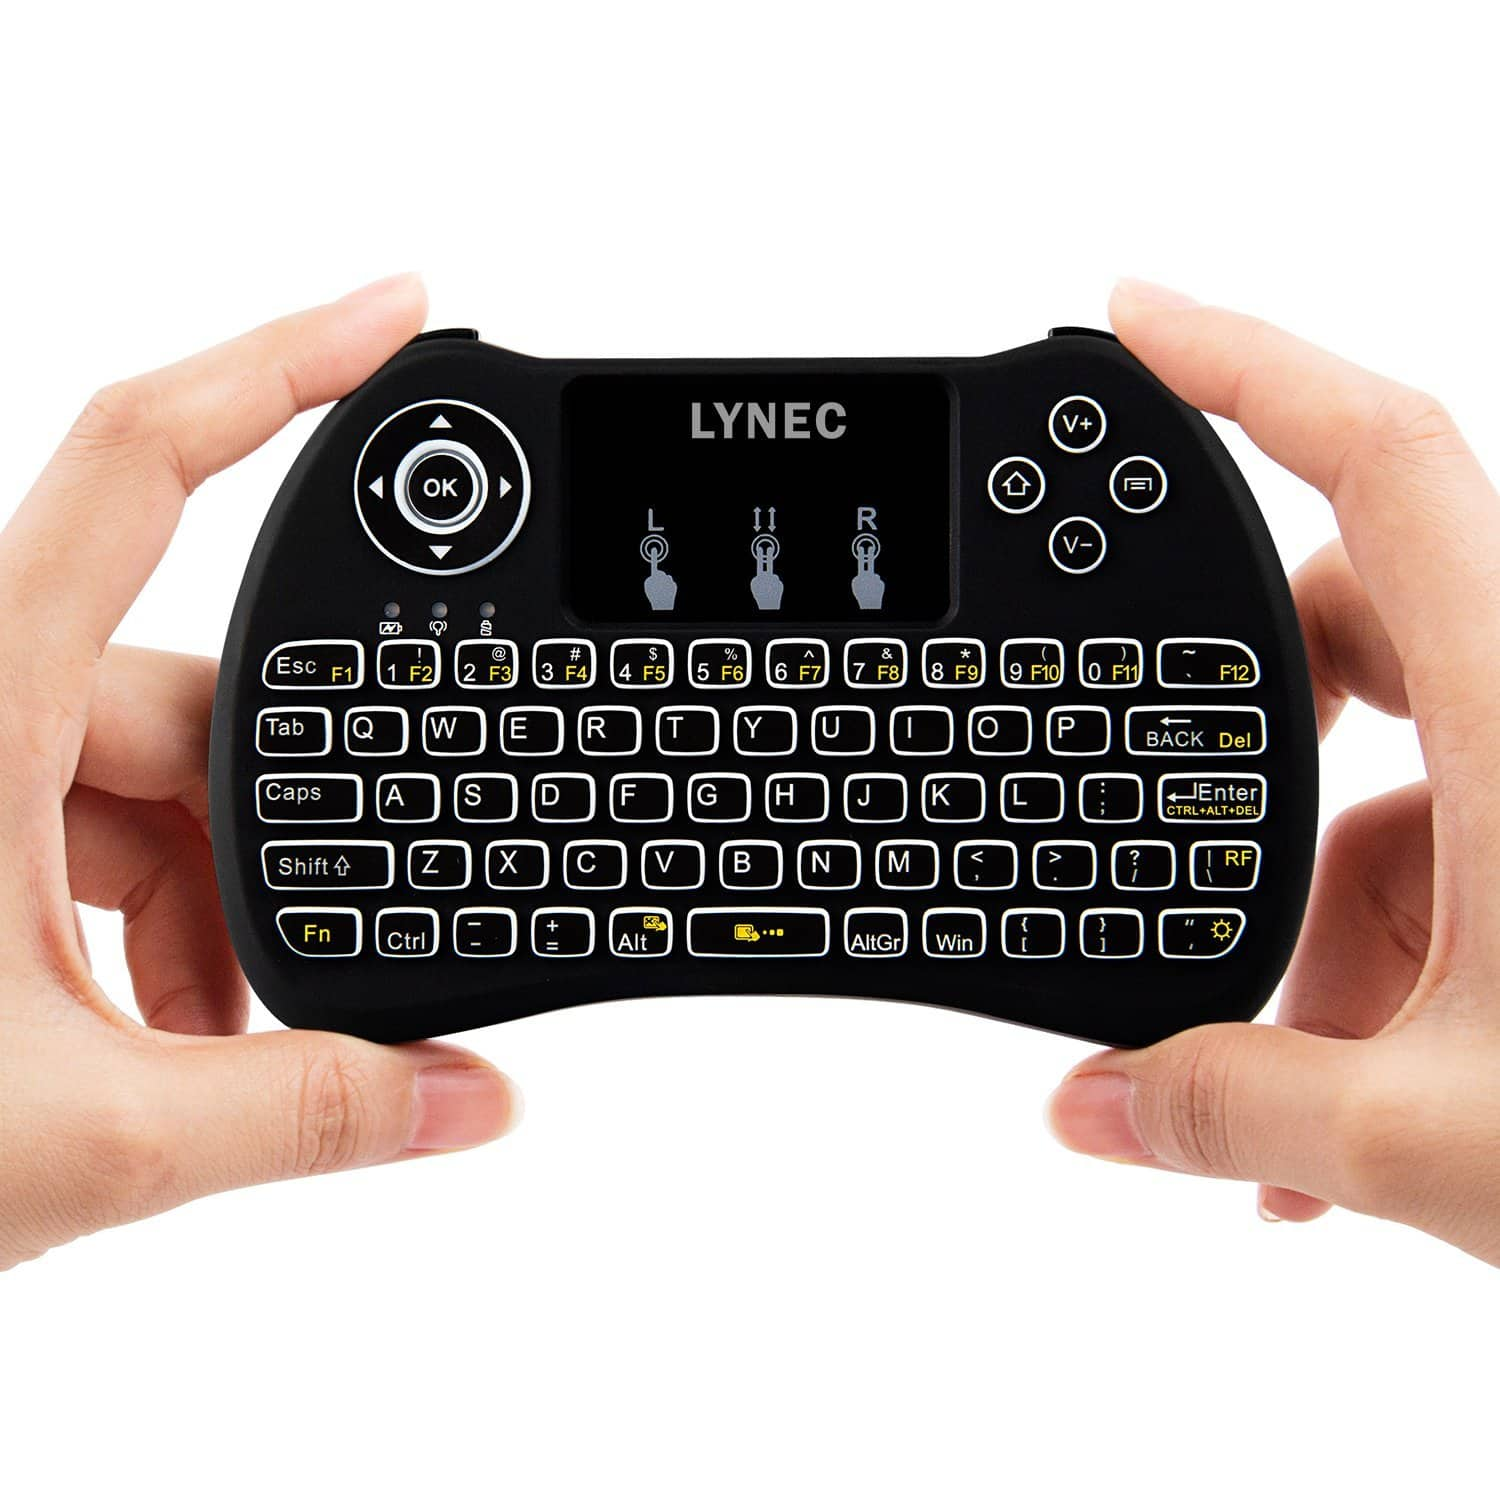 Lynec H9 Backlit 2.4GHz Mini Wireless Touch Remote Keyboard $10.99 @ Amazon